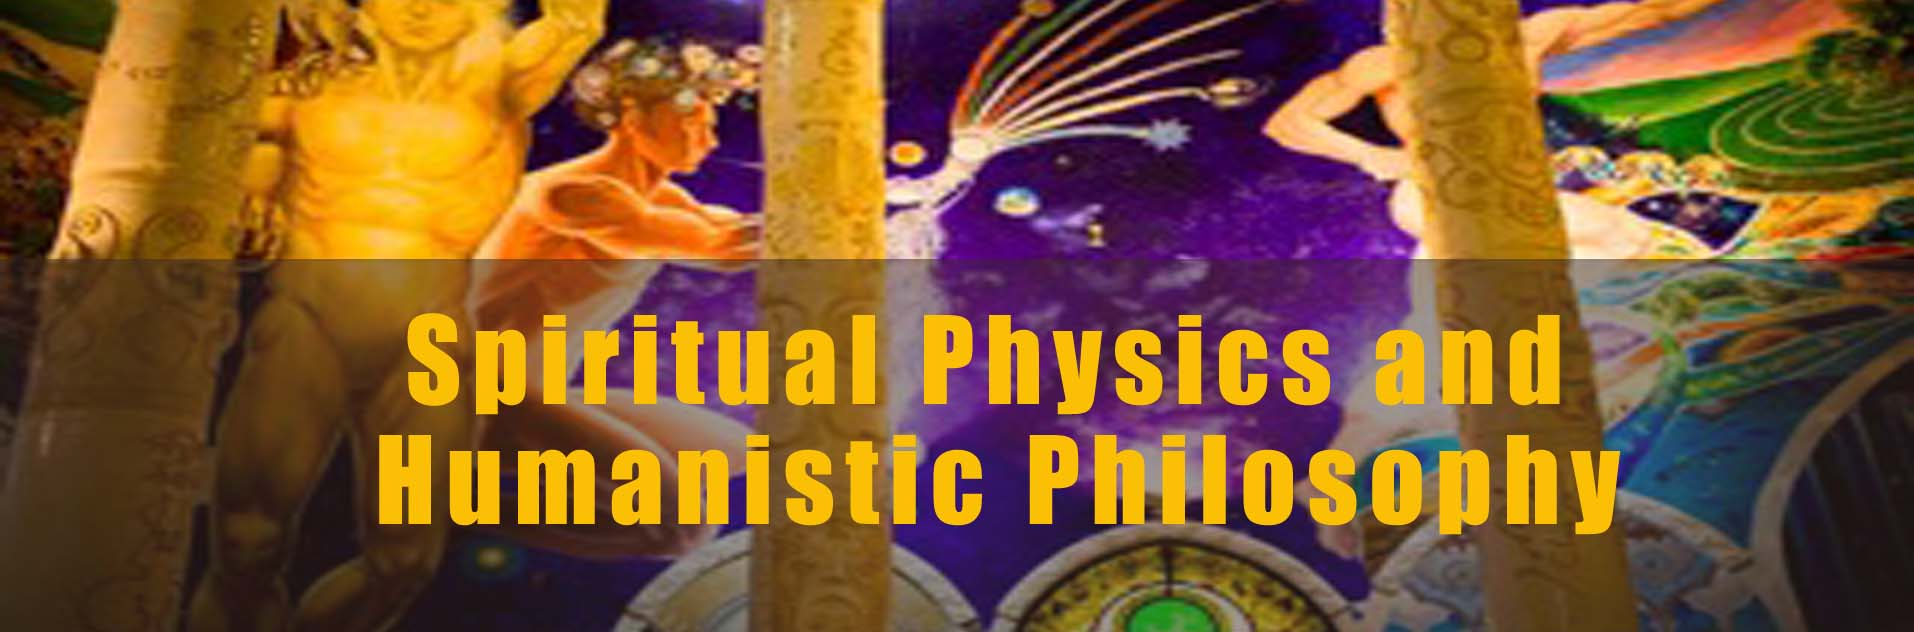 Damanhur Spiritual Physics & Humanistic Philosophy